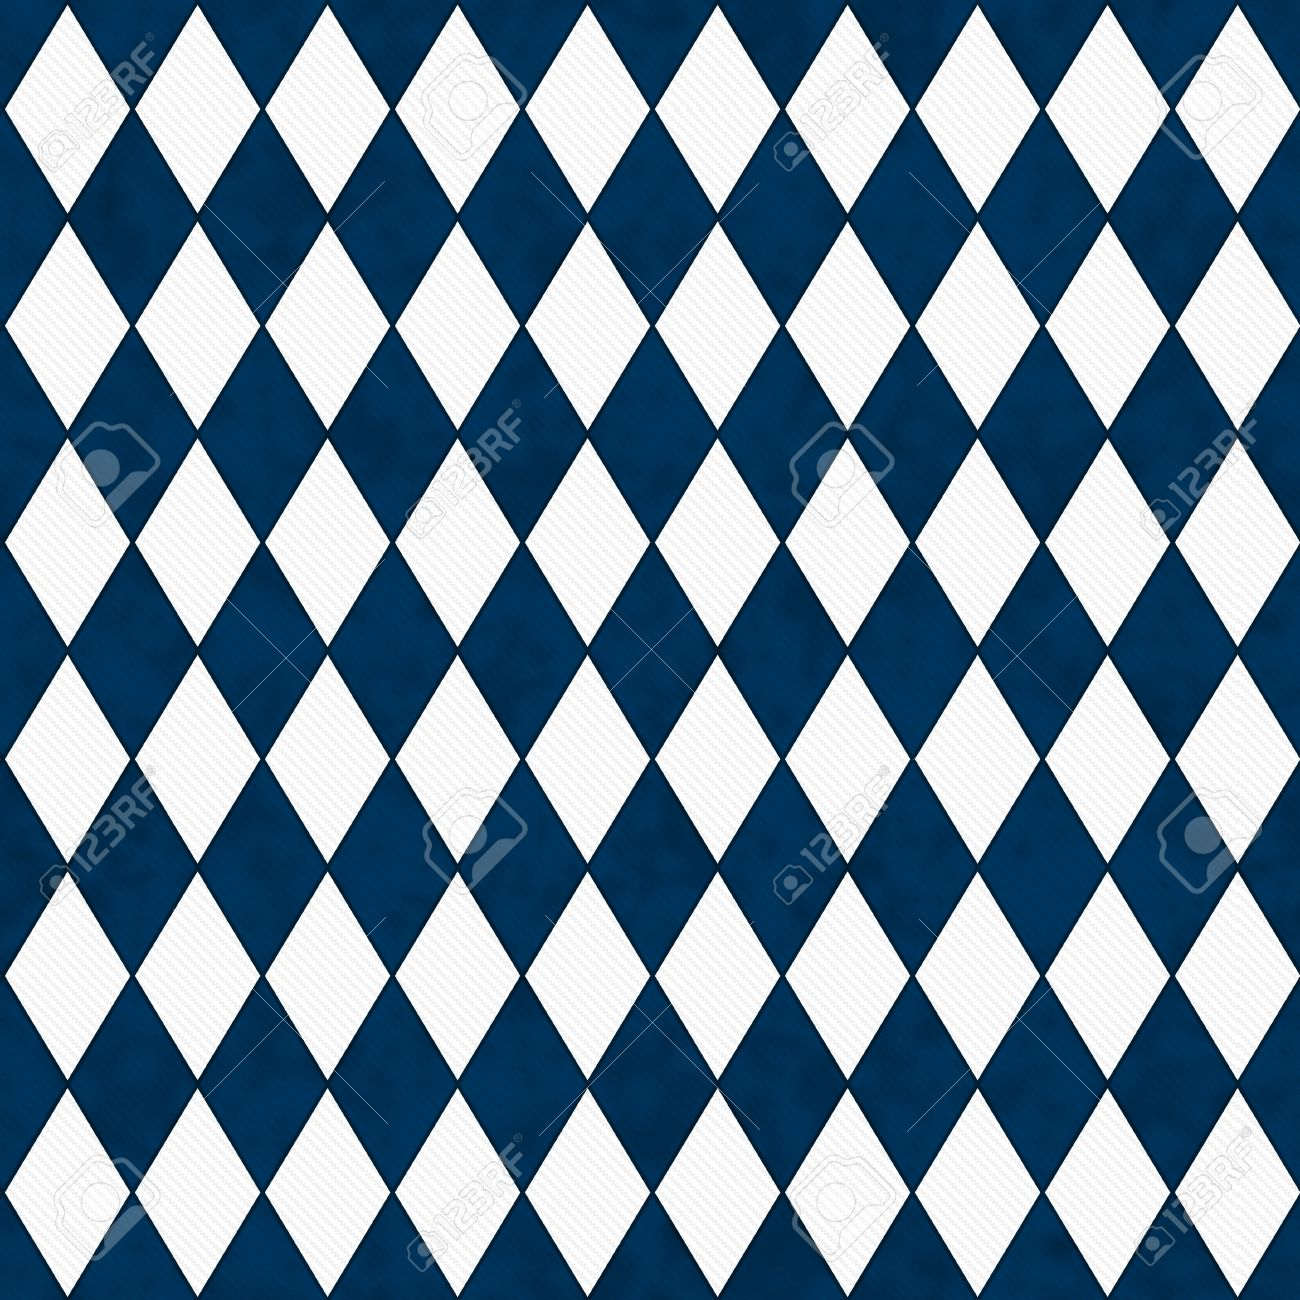 Navy Blue And White Diamond Shape Fabric Background That Is ...